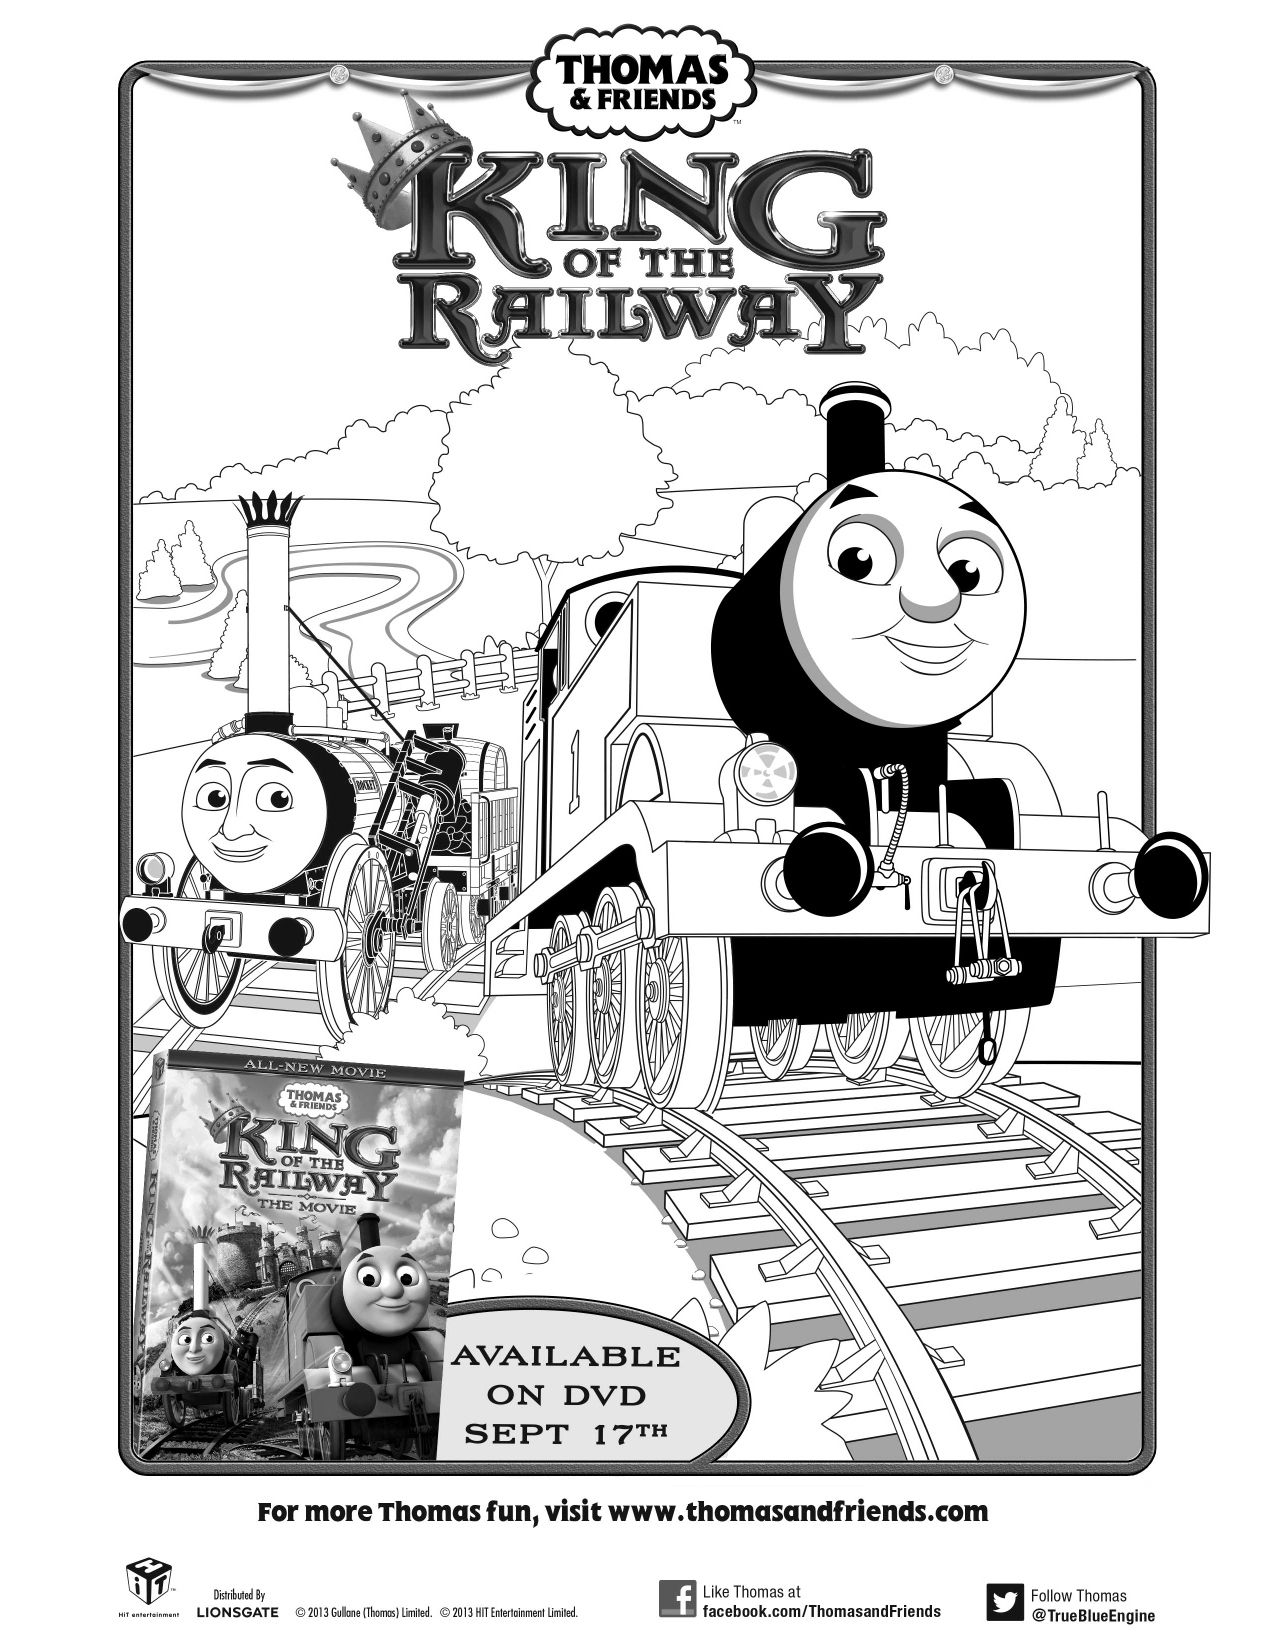 Thomas Amp Friends King Of The Railway The Movie Printable Coloring Sheet